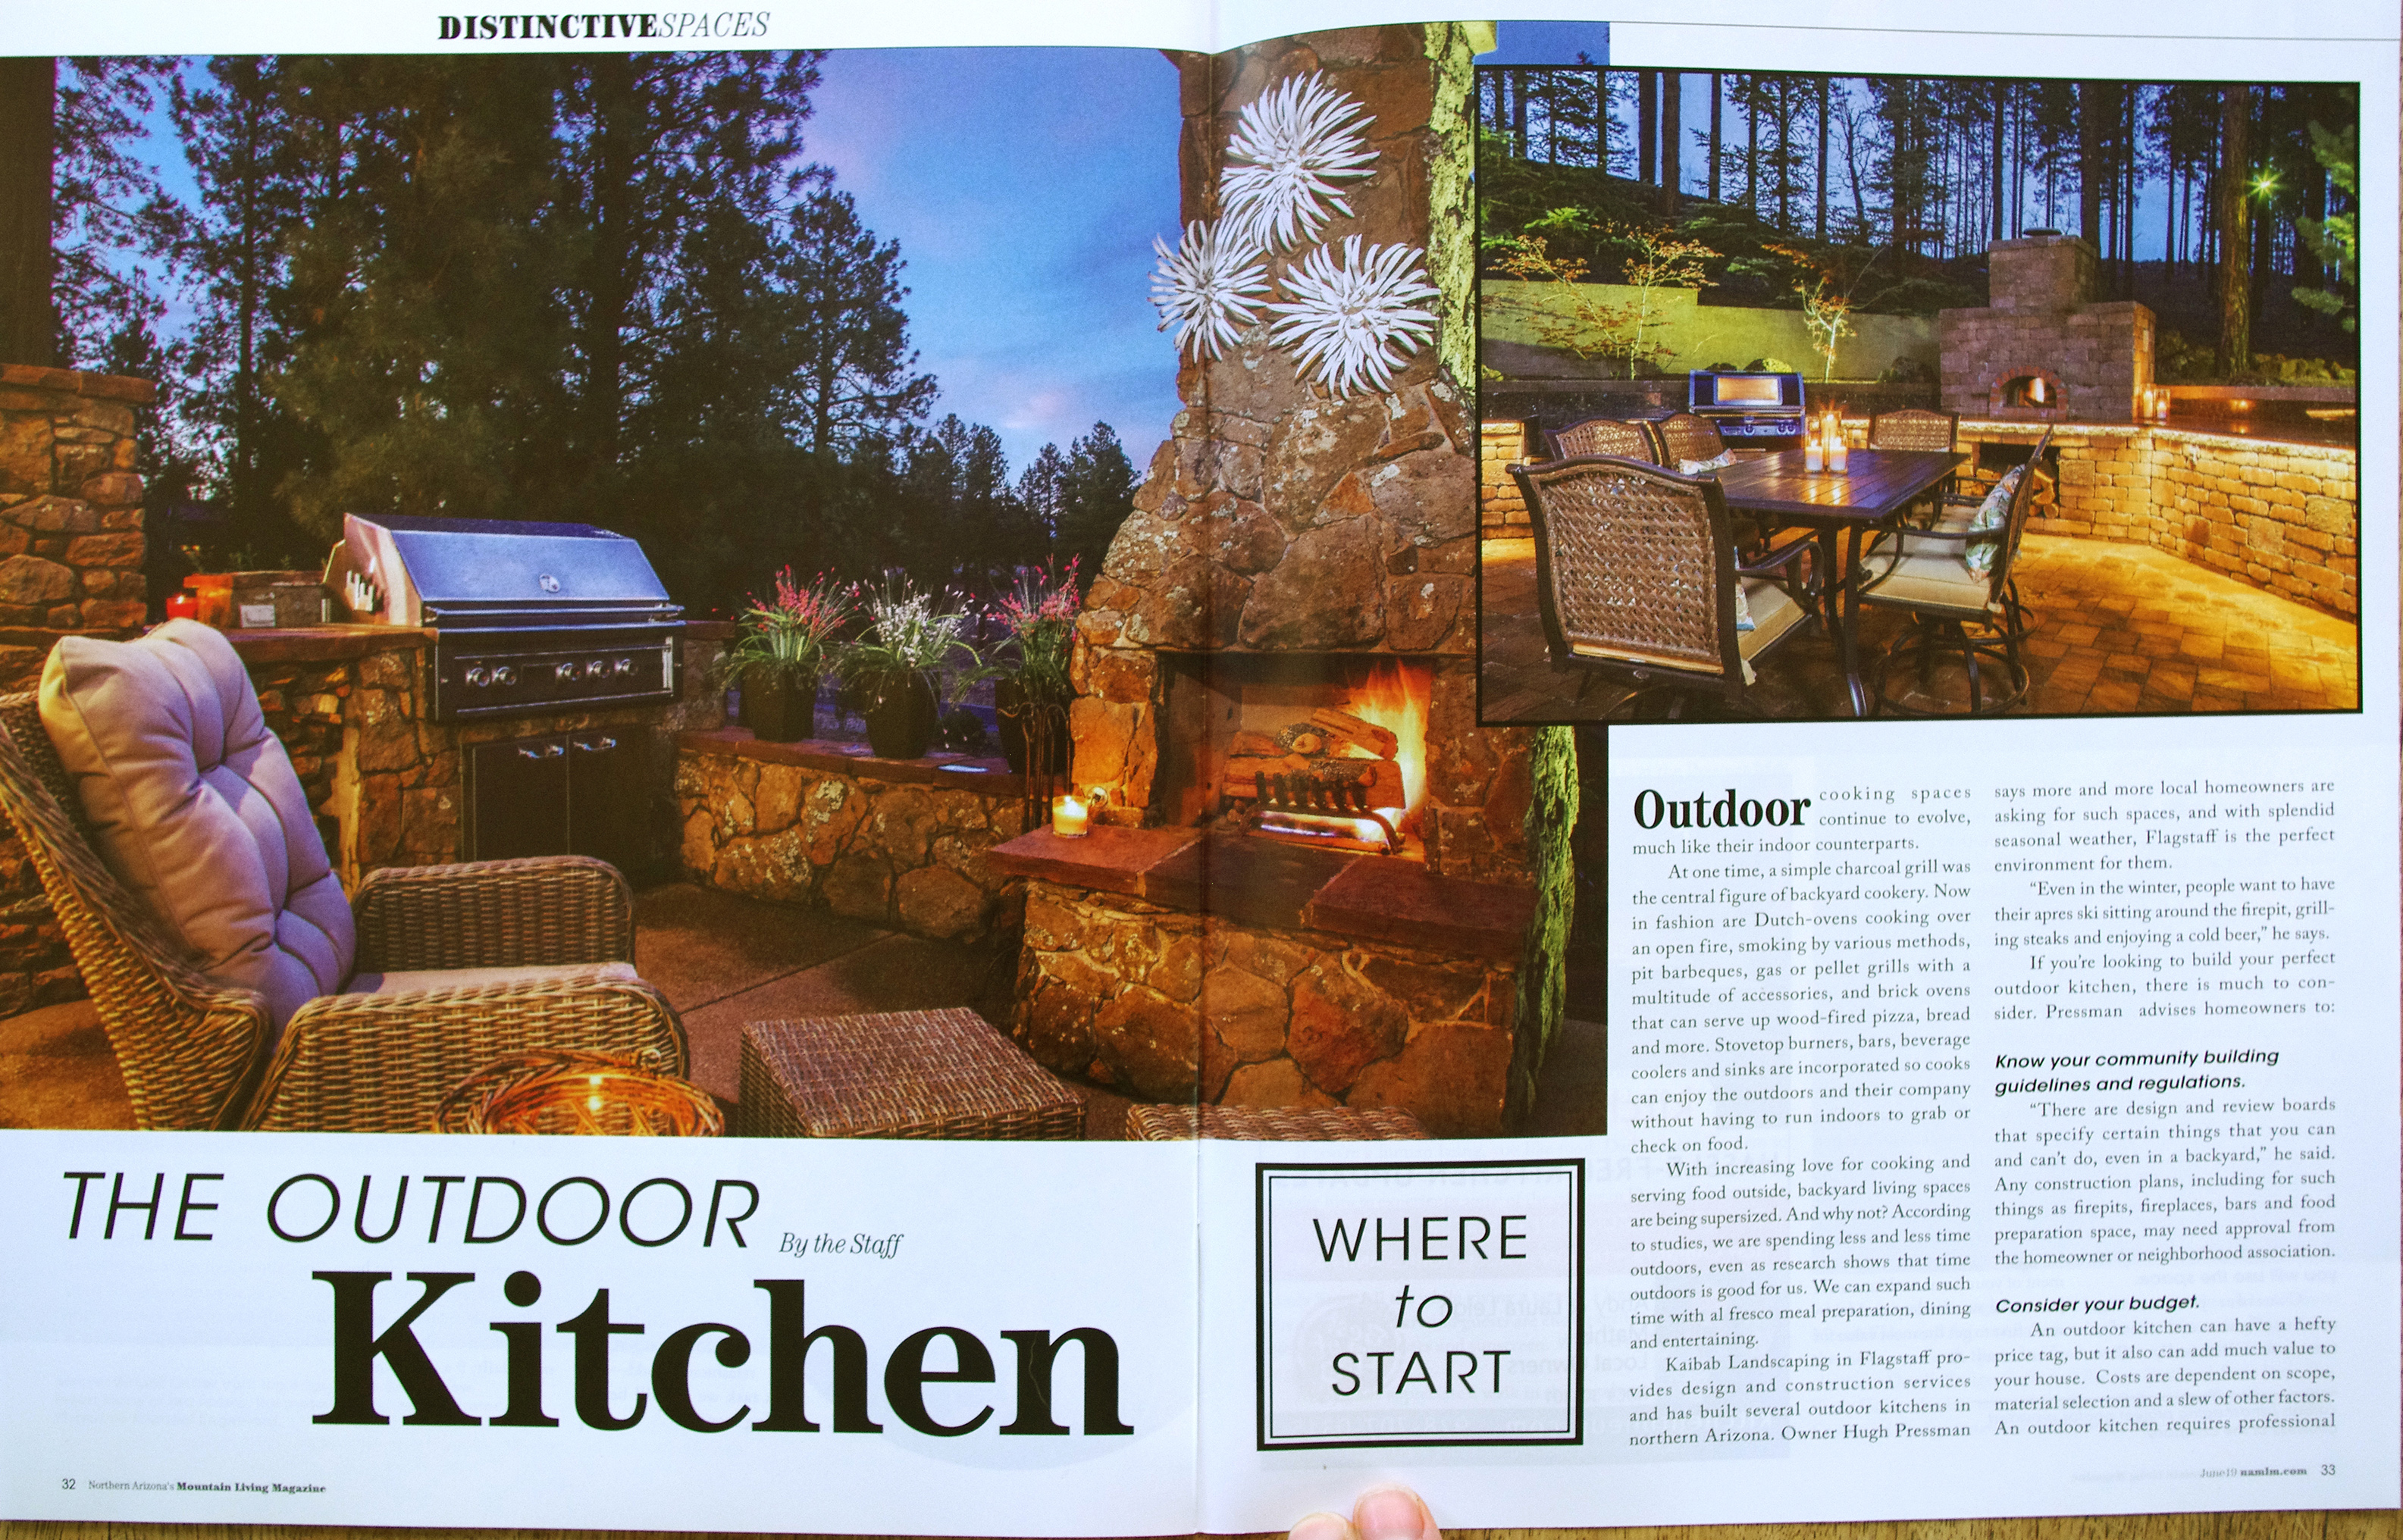 Landscaping Company - Outdoor kitchens